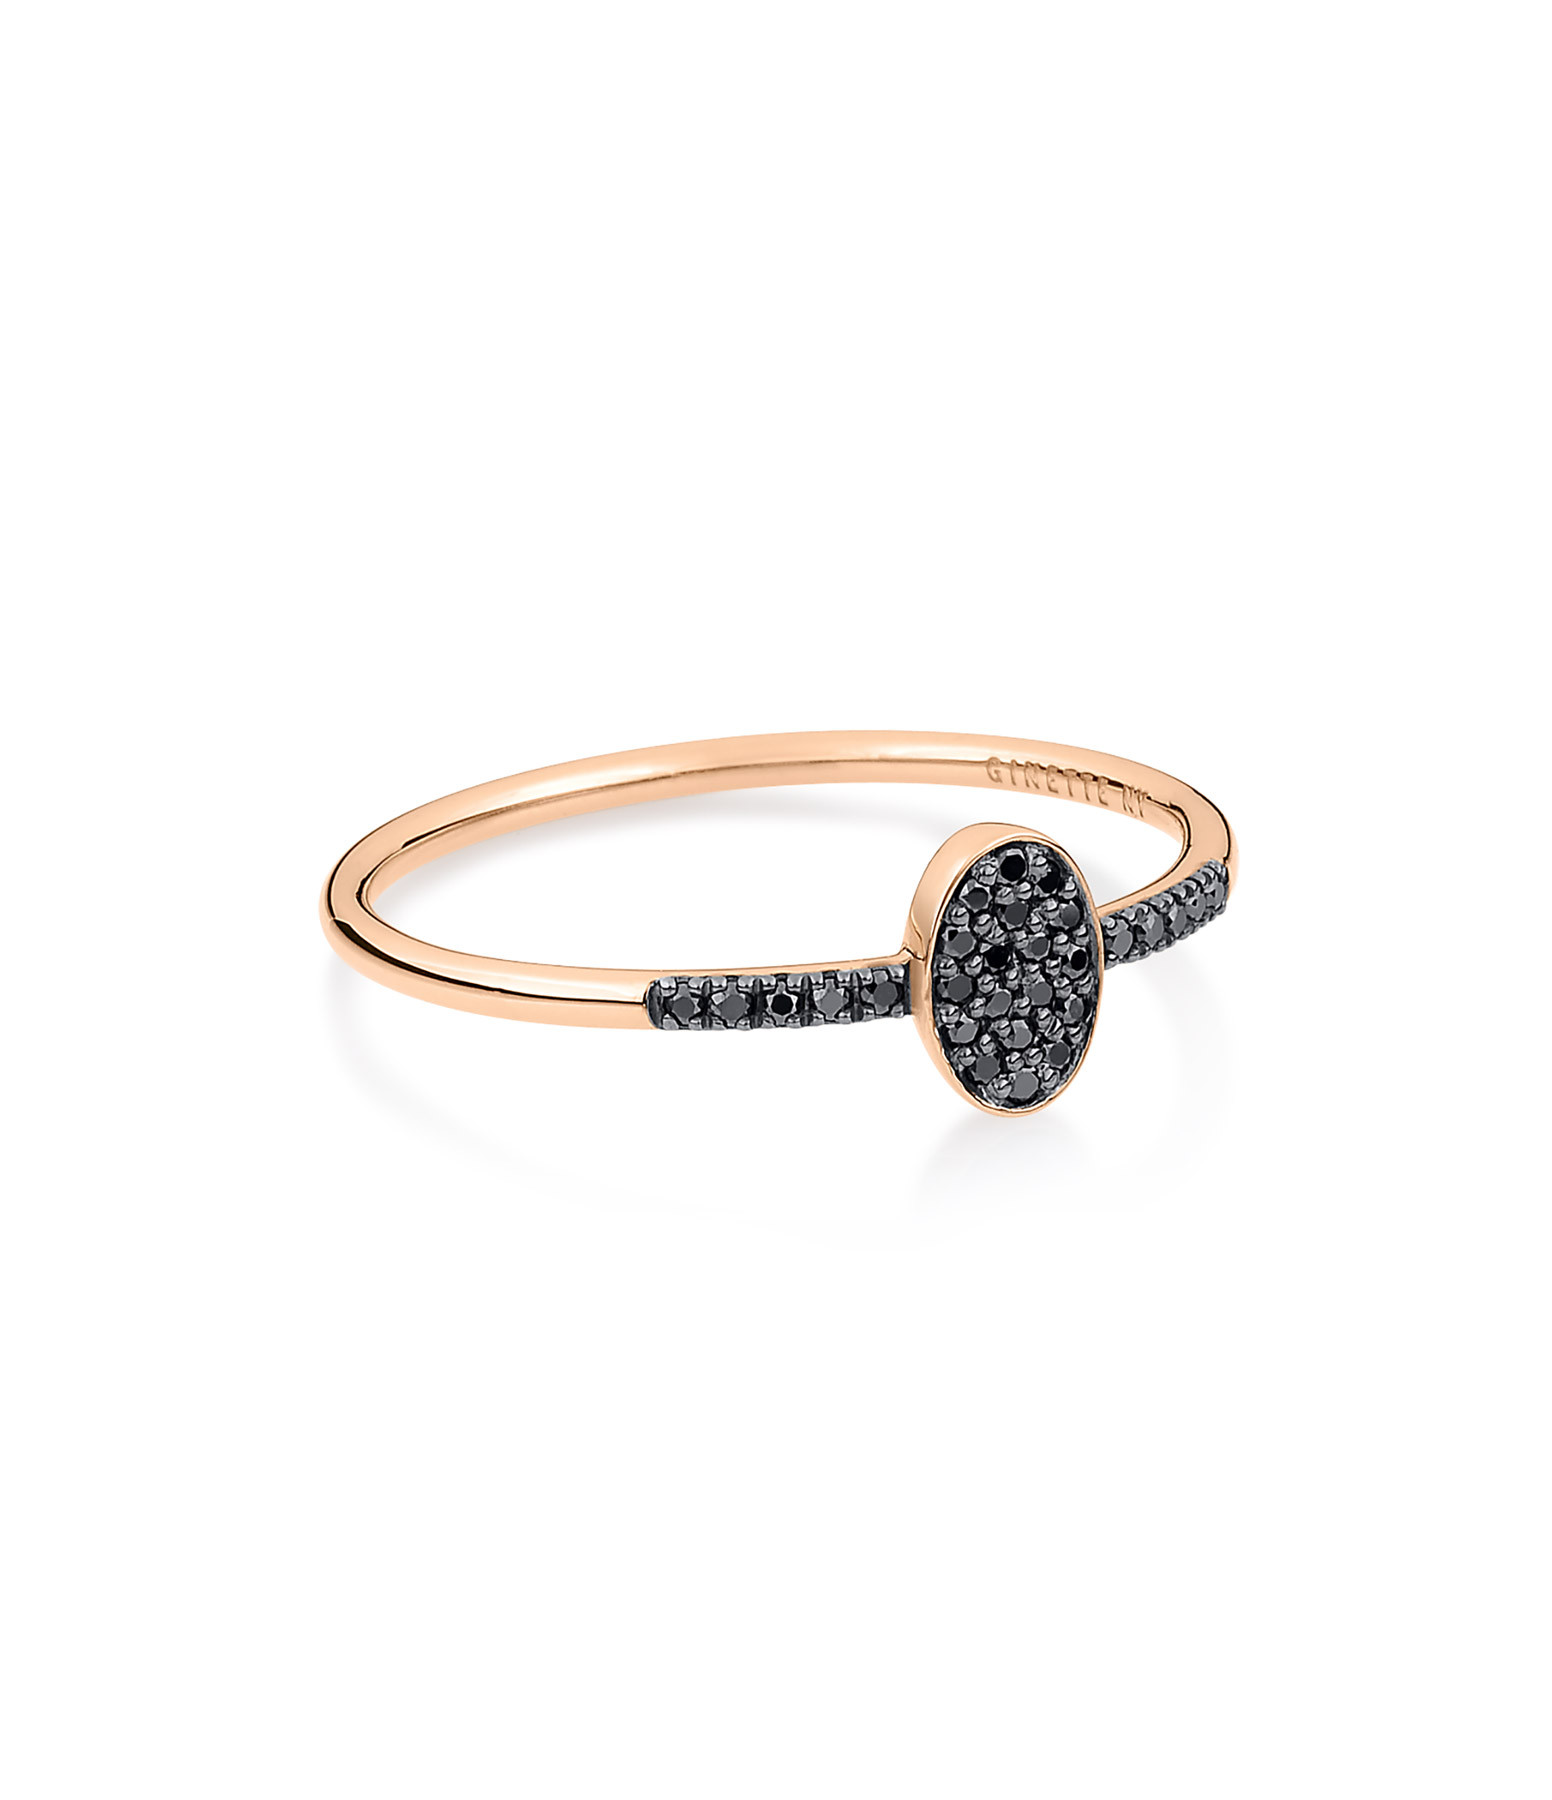 GINETTE_NY - Bague Sequin Or Rose Diamants Noirs